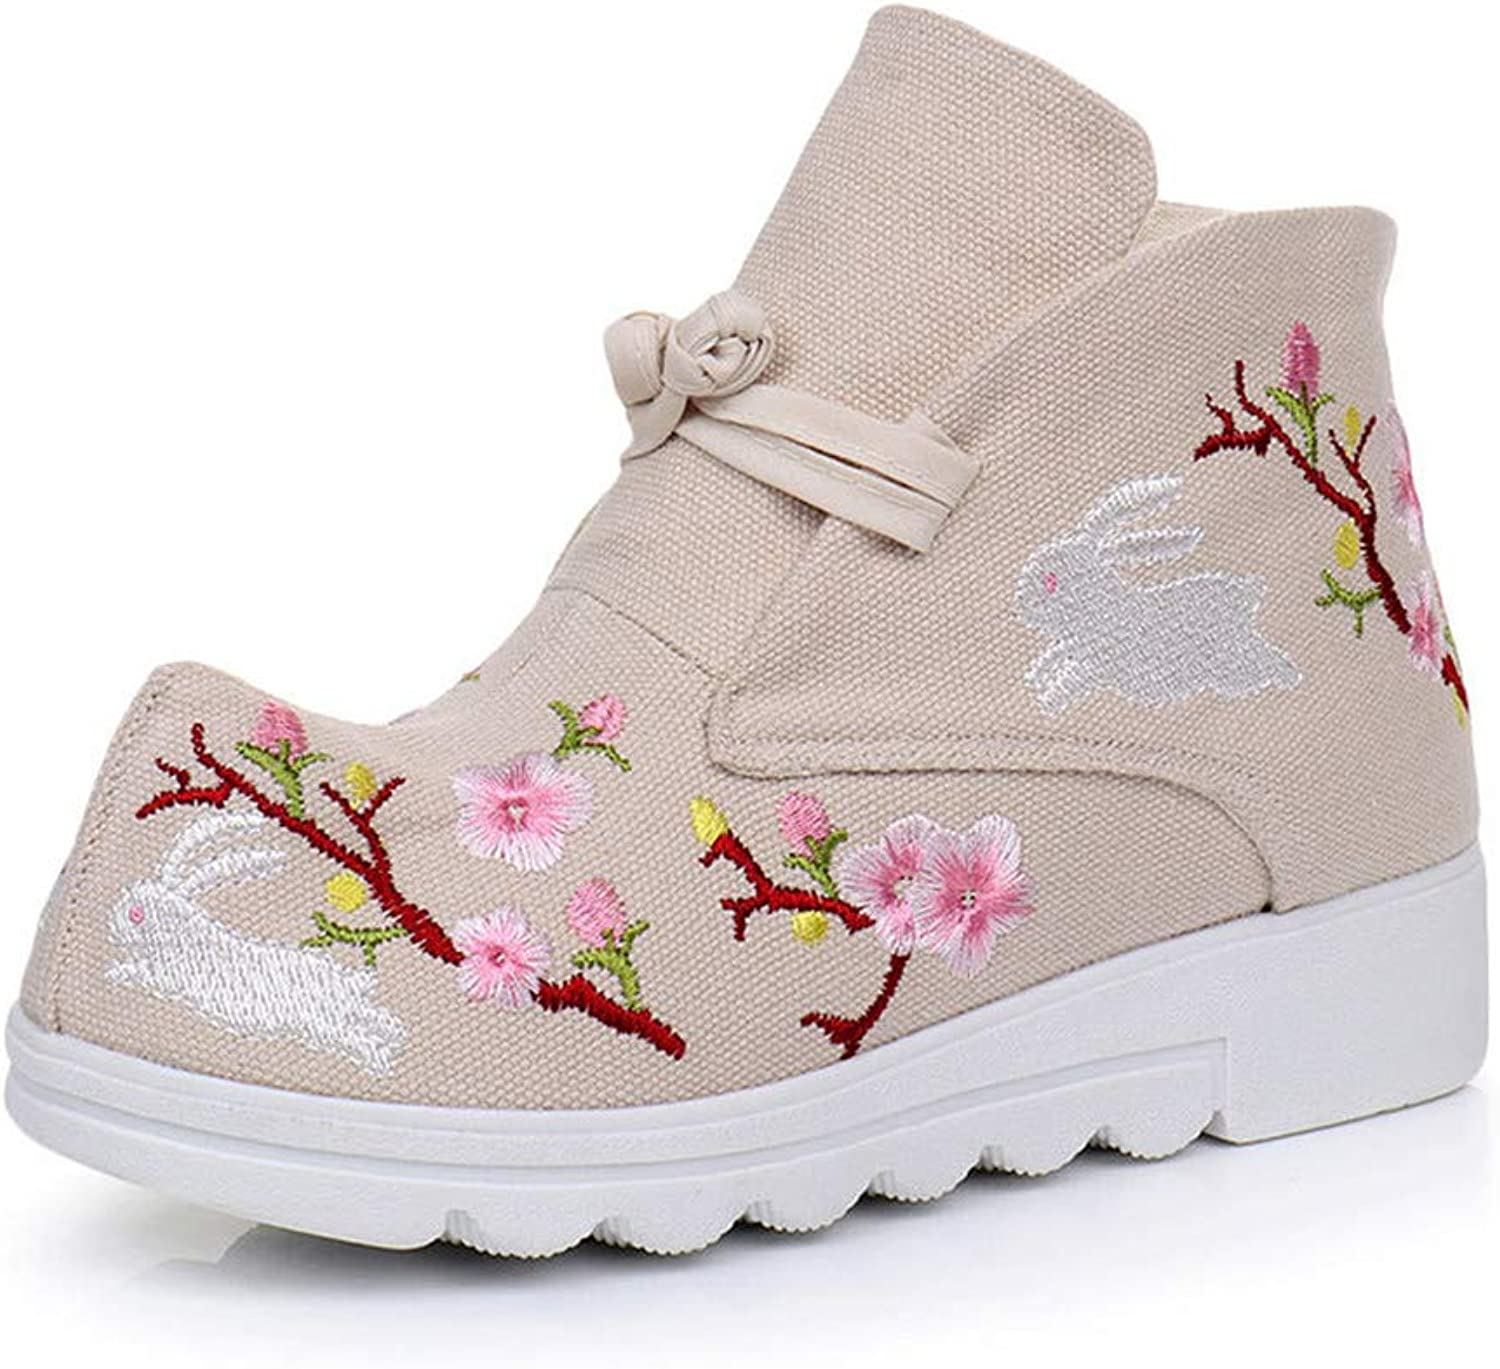 MFairy Women's Embroidery Floral Round Toe Platform Ankle Boots Casual Lace up Canvas shoes